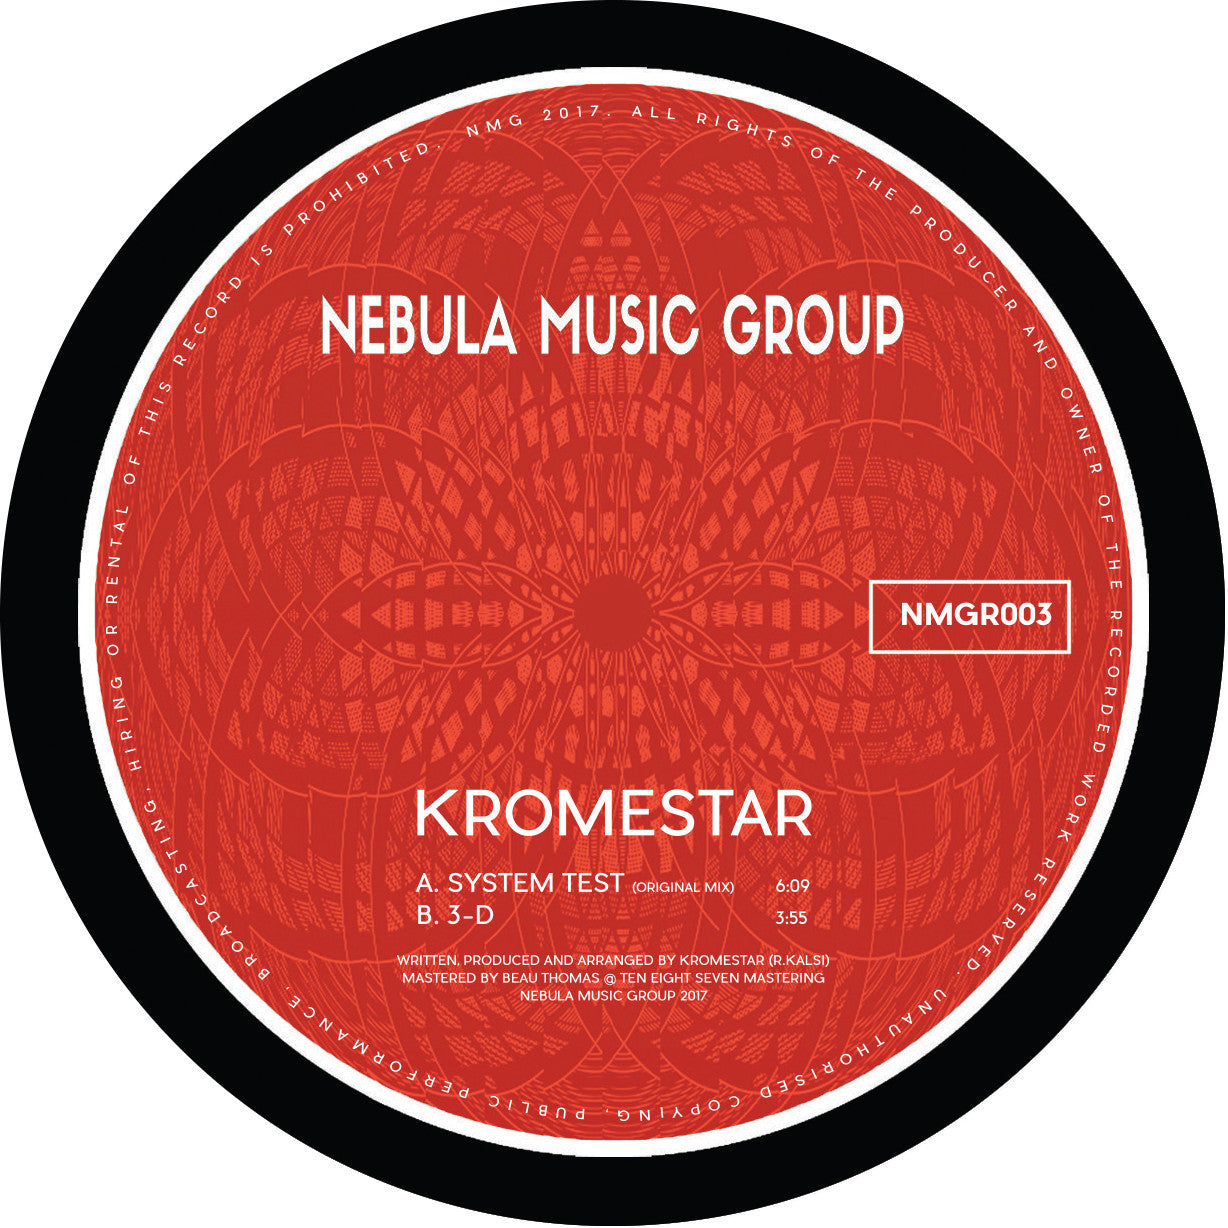 Kromestar - System Test / 3D , Vinyl - Nebula Music Group, Unearthed Sounds